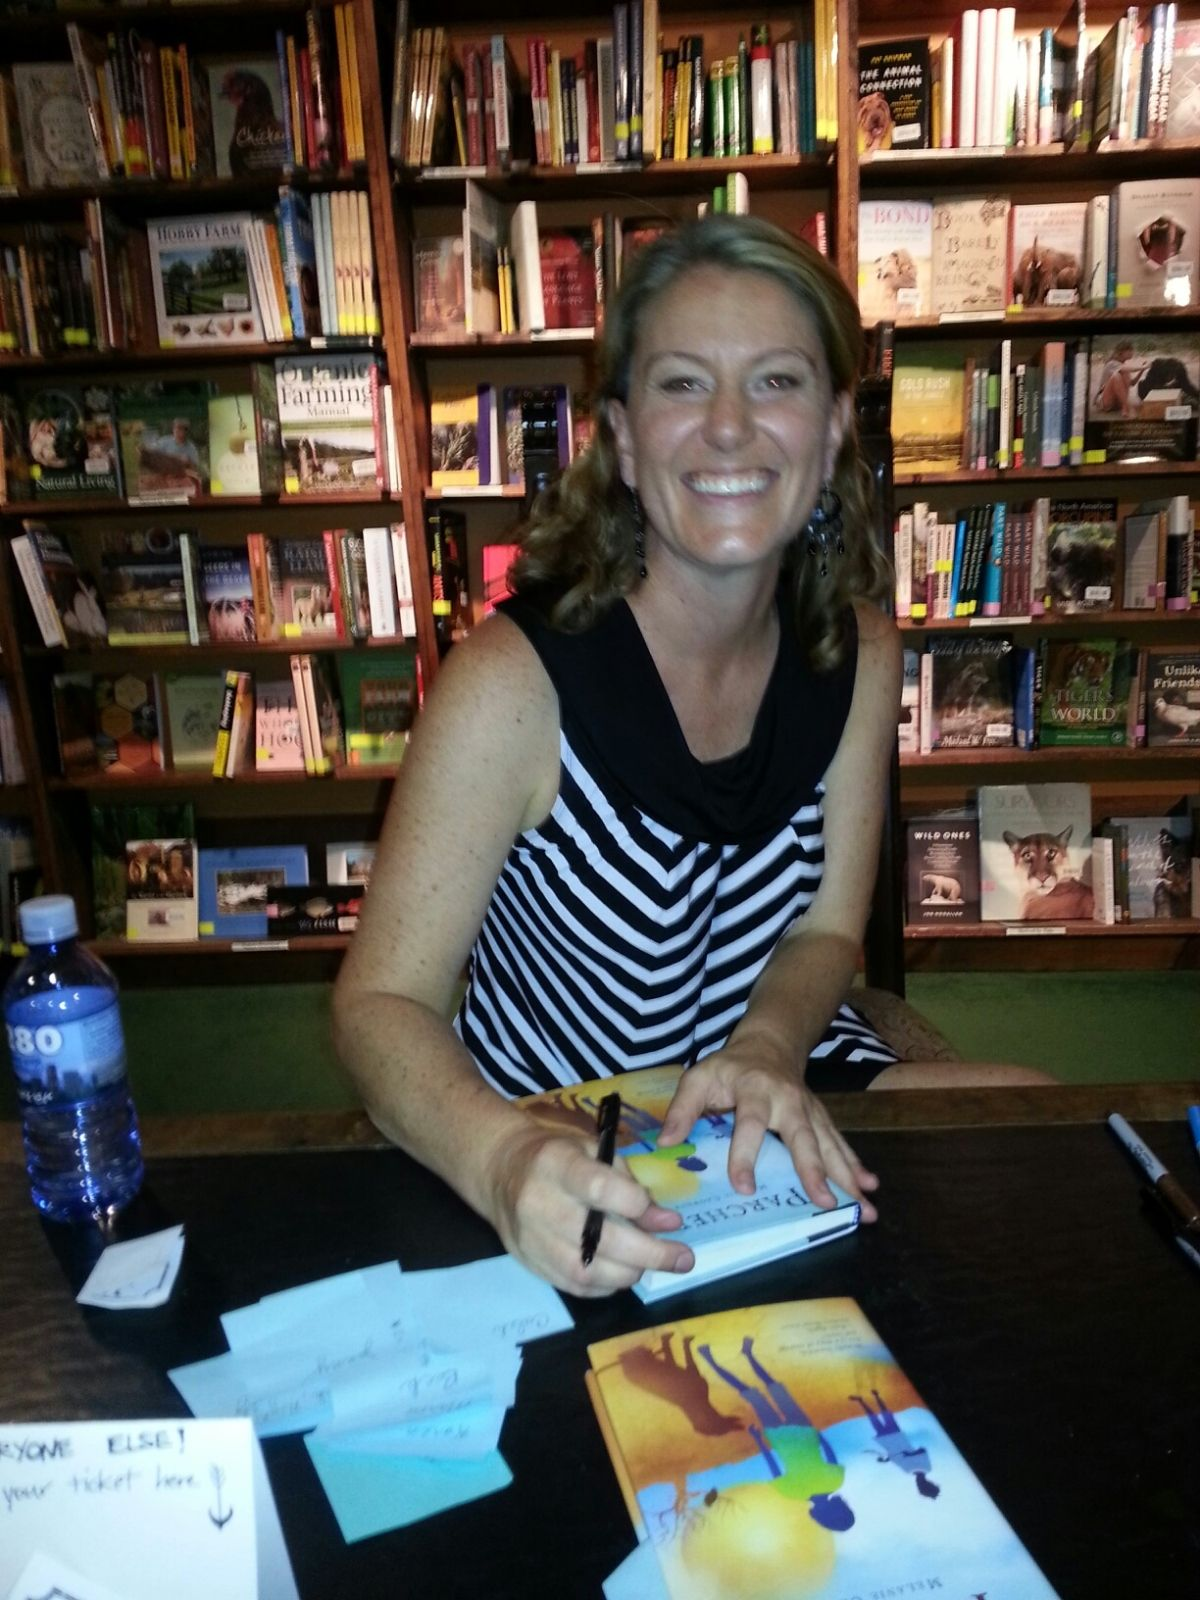 Melanie Crowder is an author for young adult novels, including the inspiring Audacity, the story of Clara Lemlich, who immigrated from Russia to the United States in the early twentieth century.